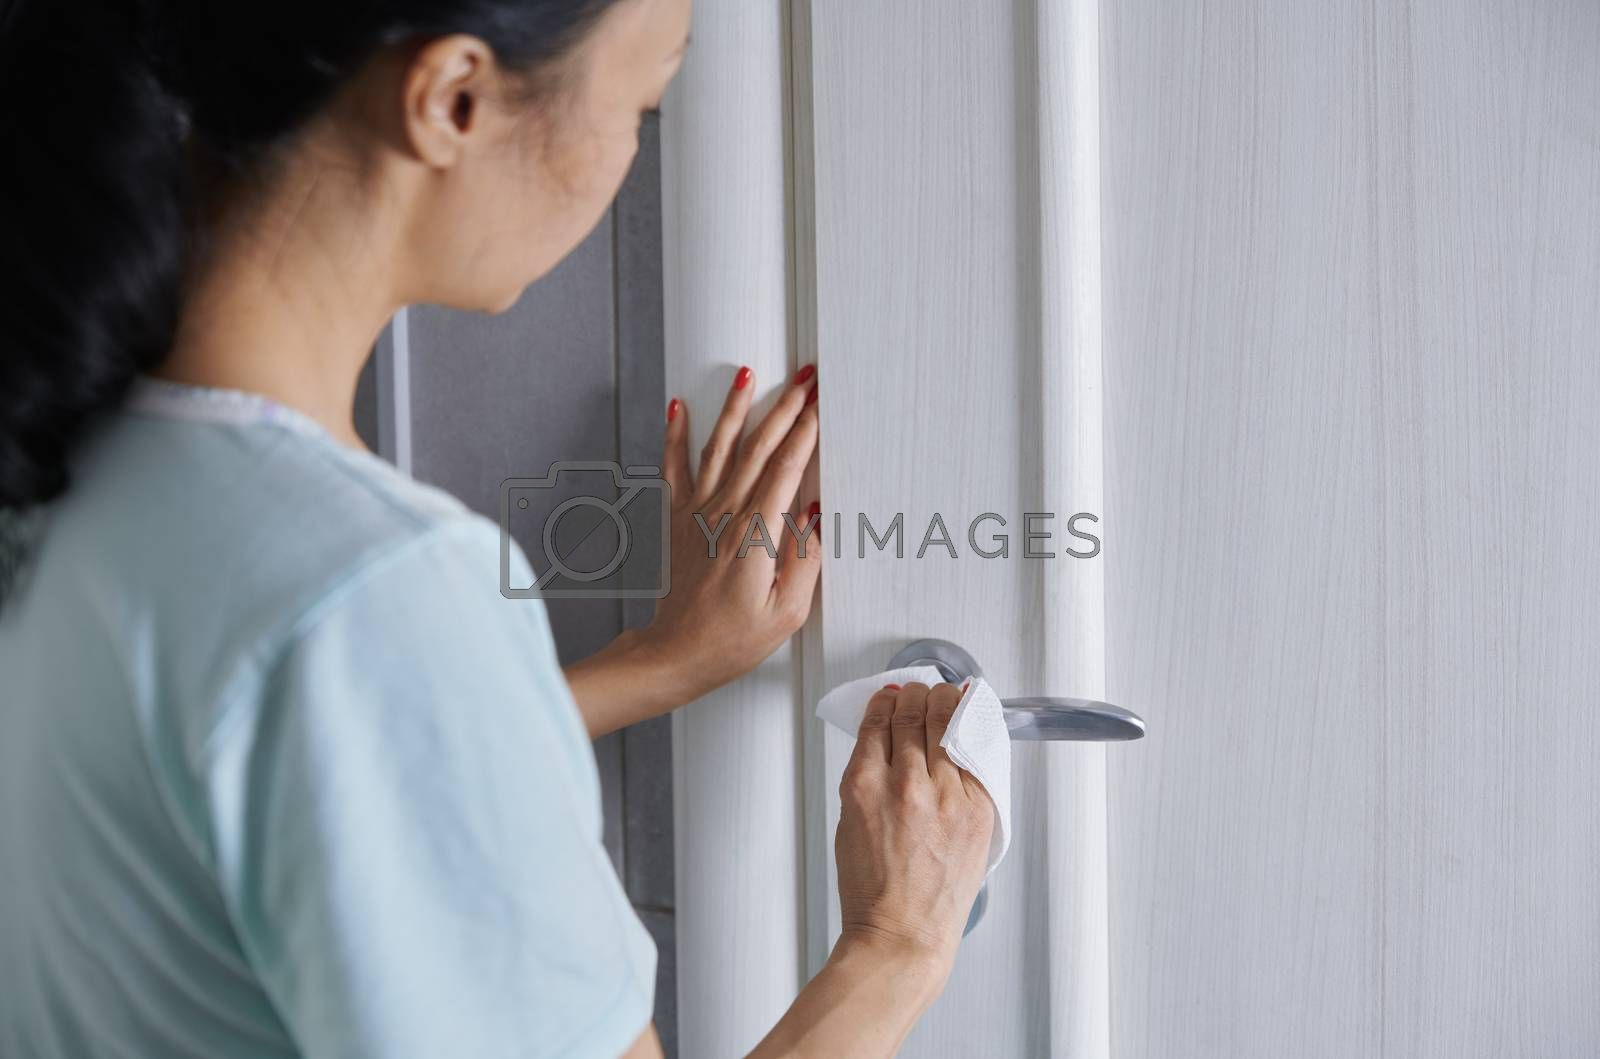 Royalty free image of Woman cleaning the door handle with disinfecting wipe by Novic